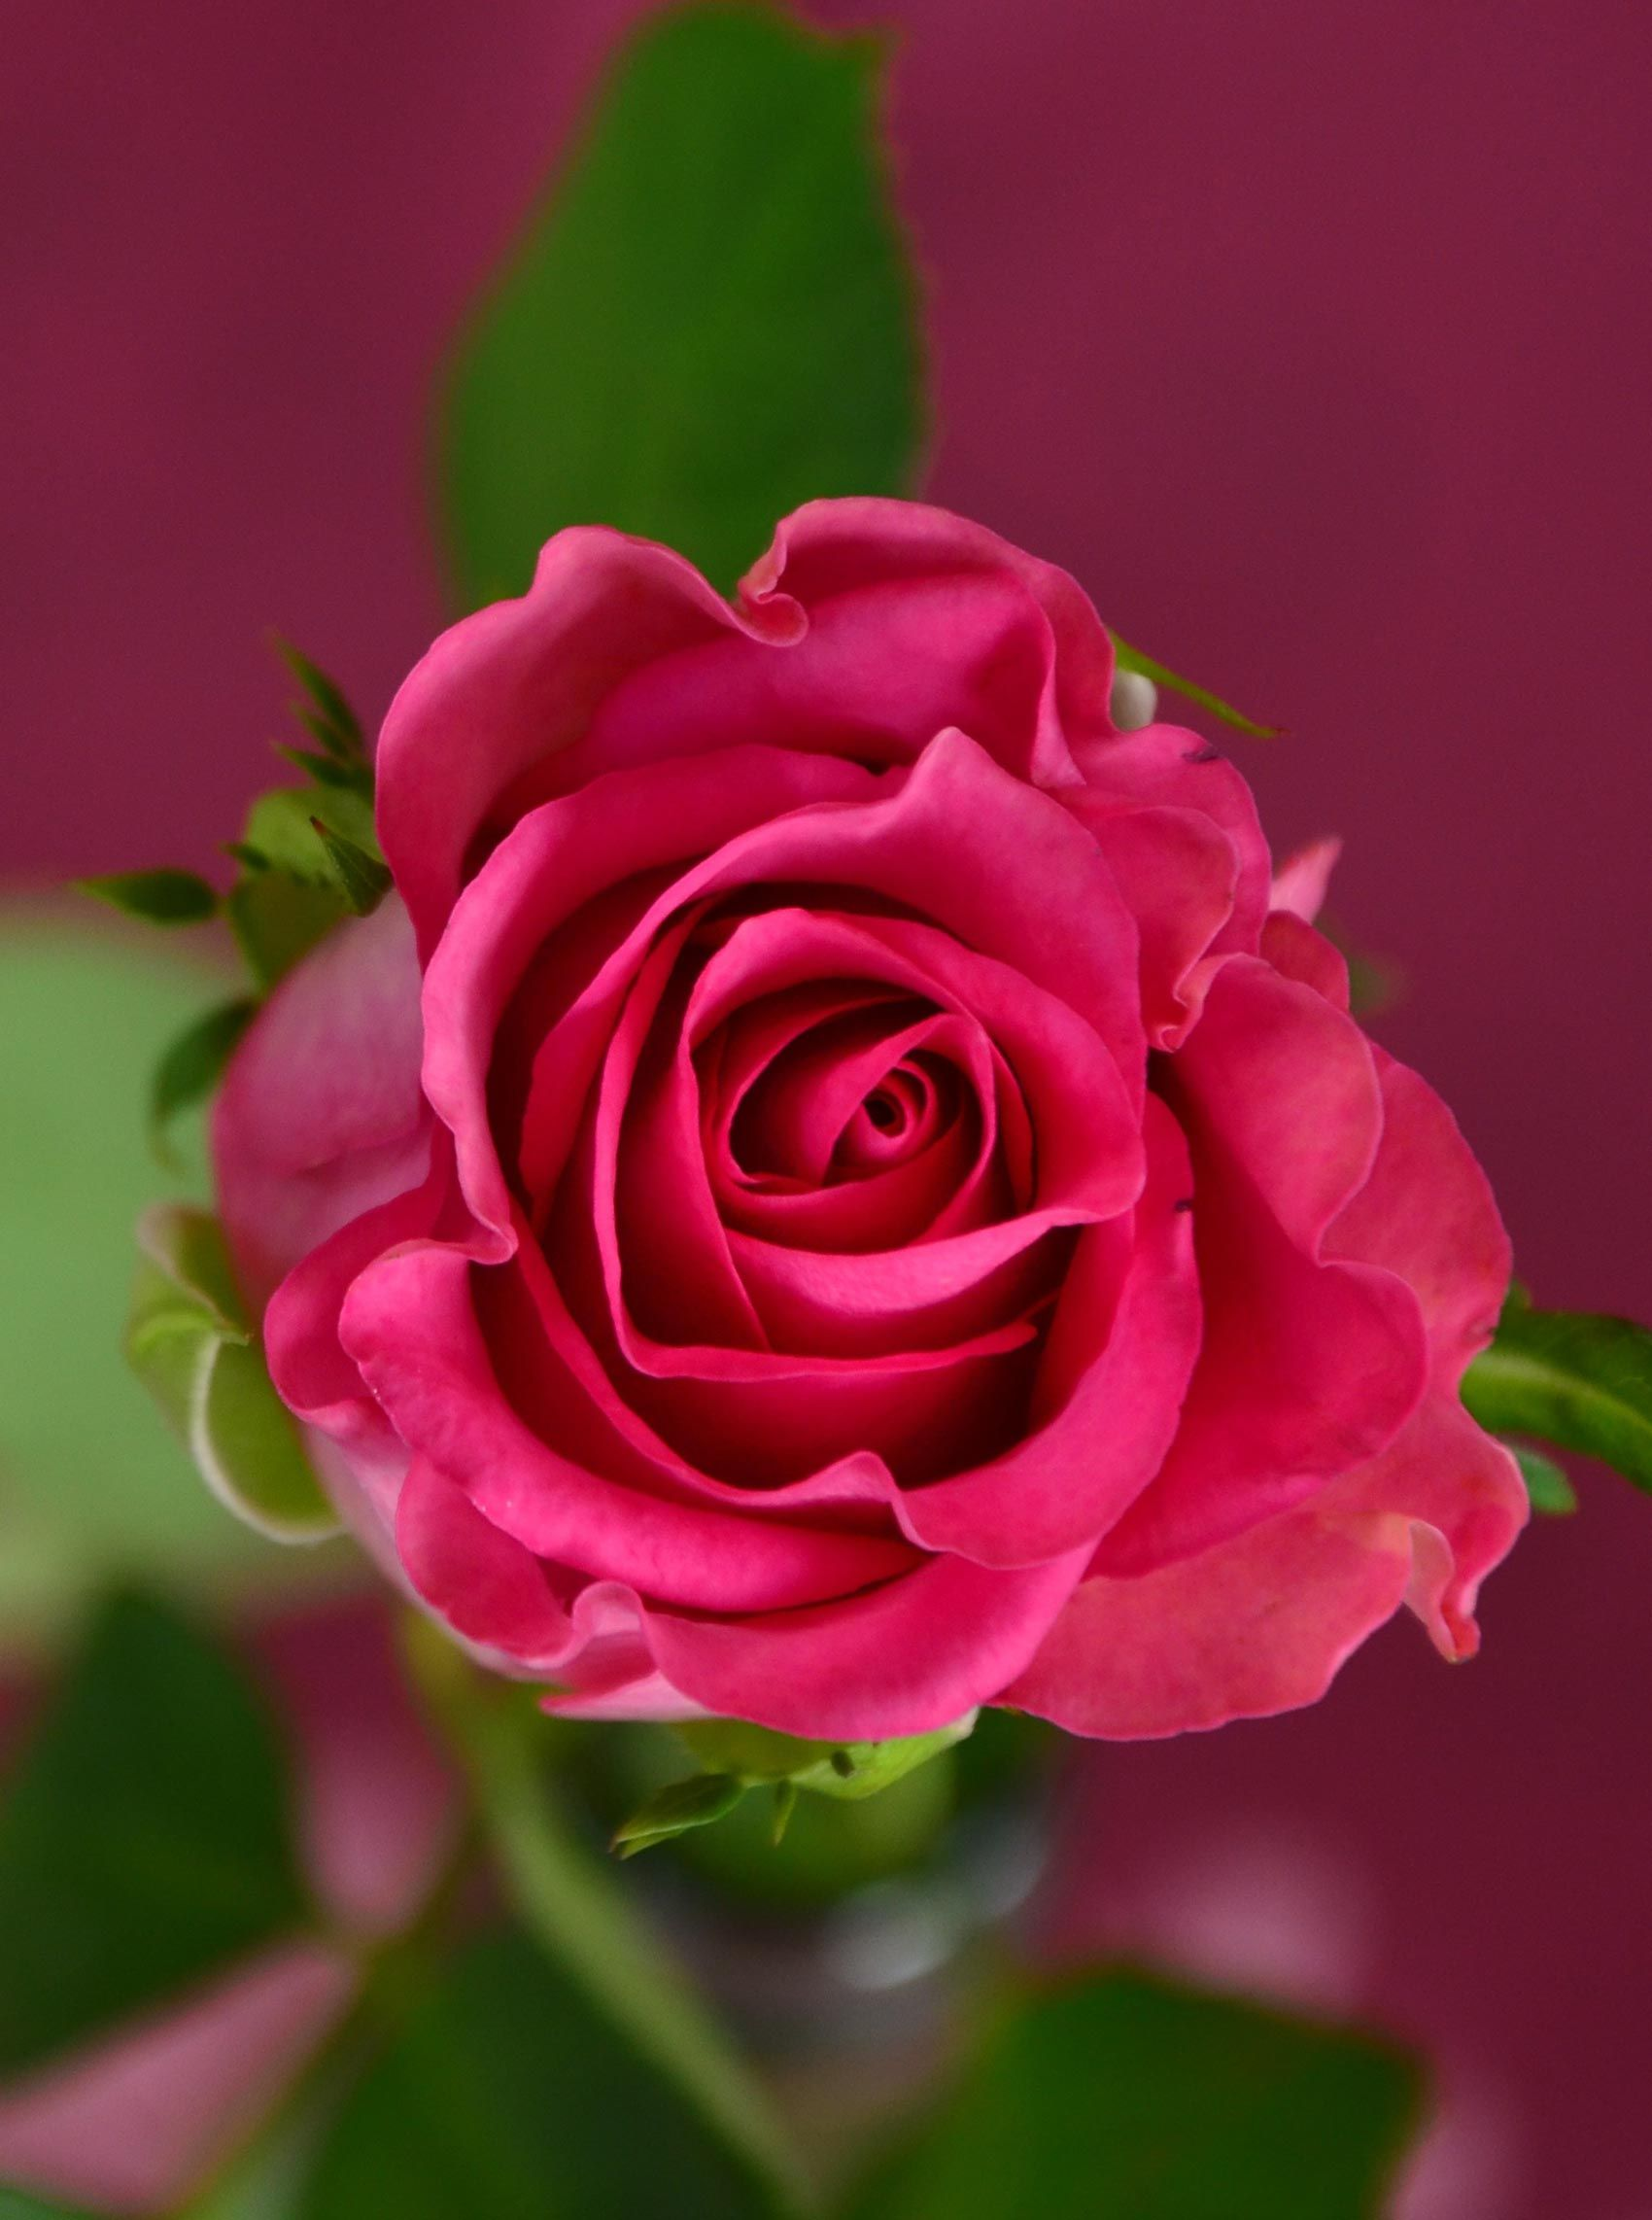 beautiful pink rose flower picture | photography | pinterest | rose